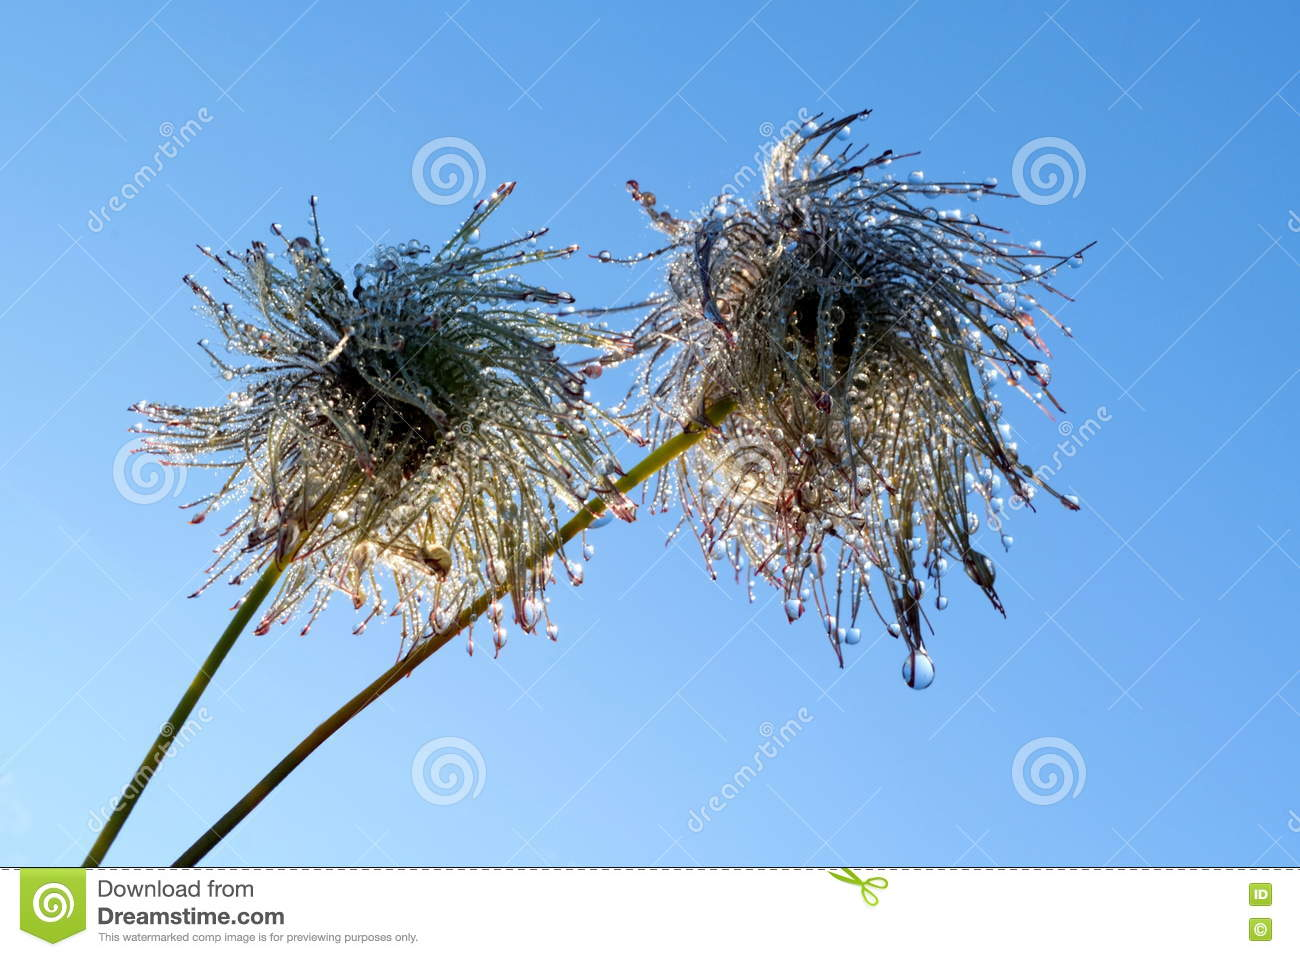 Hairy Heads Of Autumn Flowering Clematis Also Known As Old Mans Beard And Travellers Joy Covered In Rain Droplets Against Blue Sky